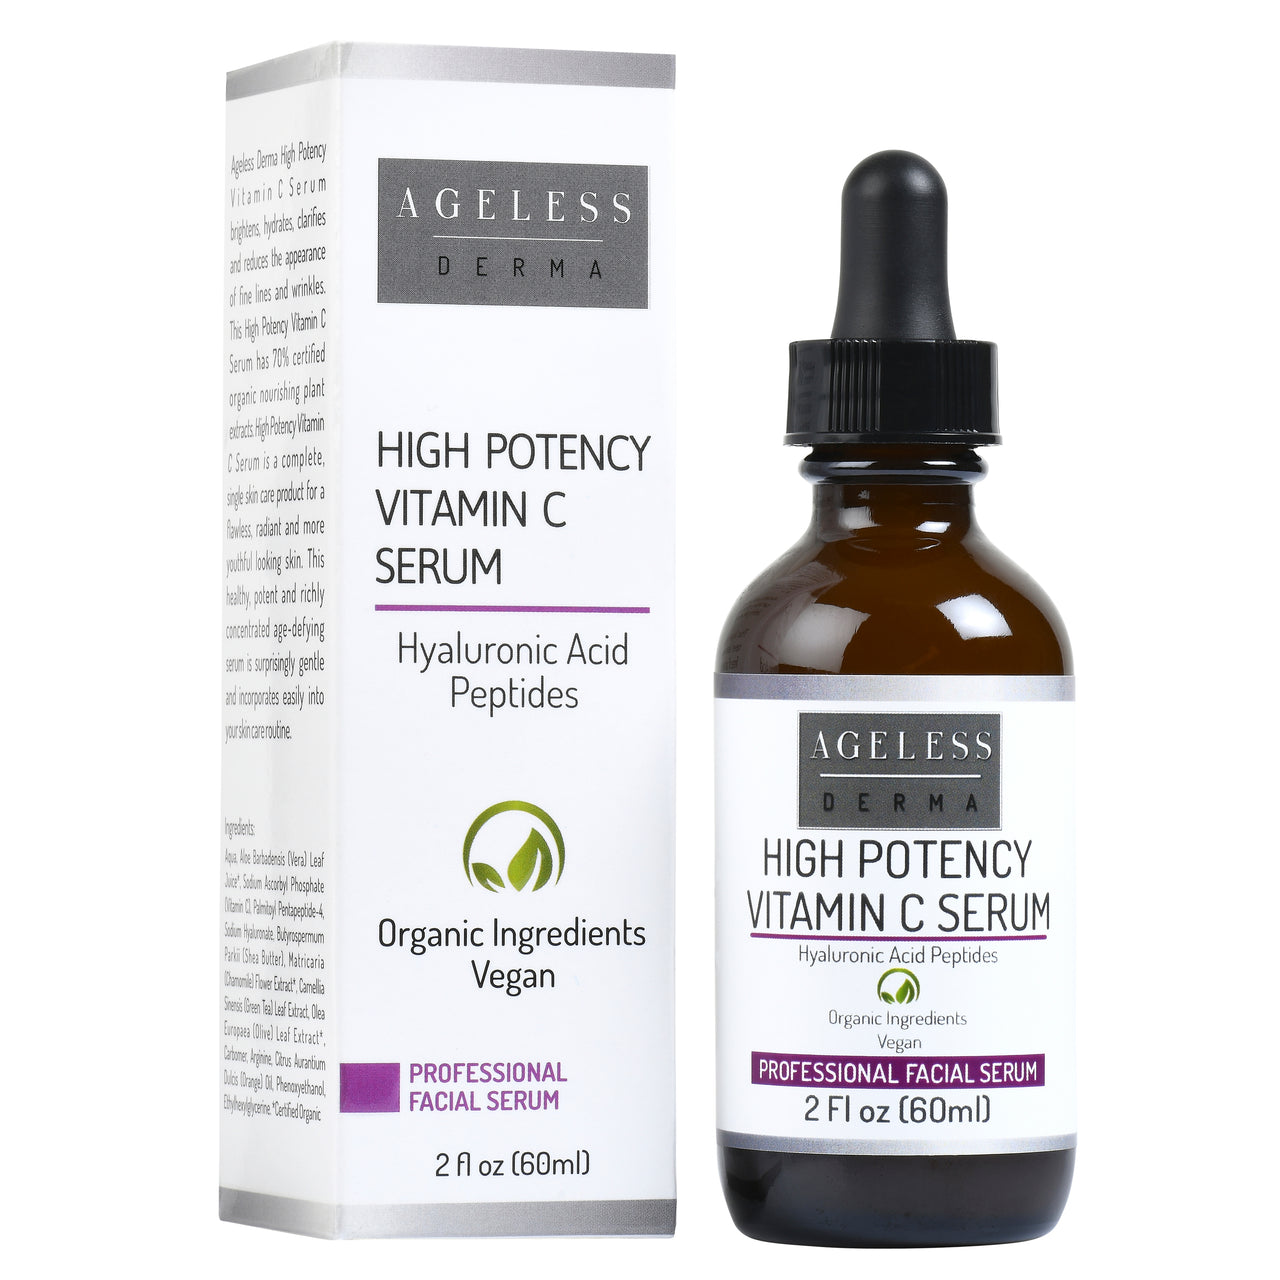 Professional High Potency Vitamin C Serum by Dr. Mostamand for a Glowing Skin